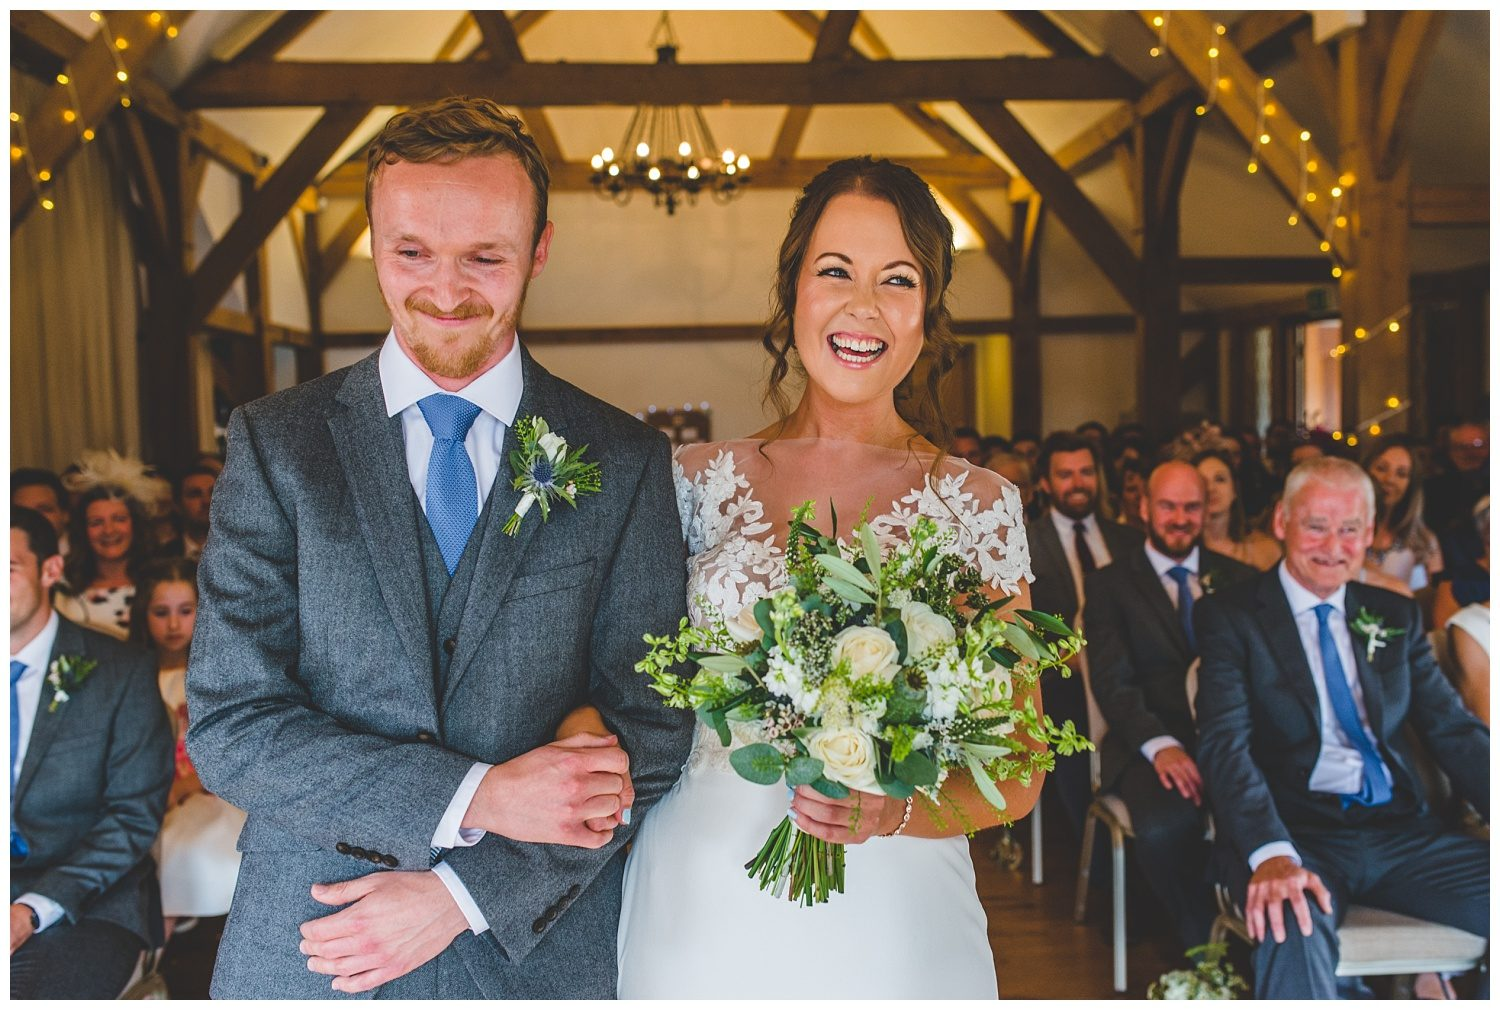 Happy couple in Sandhole Oak Barn wedding ceremony room